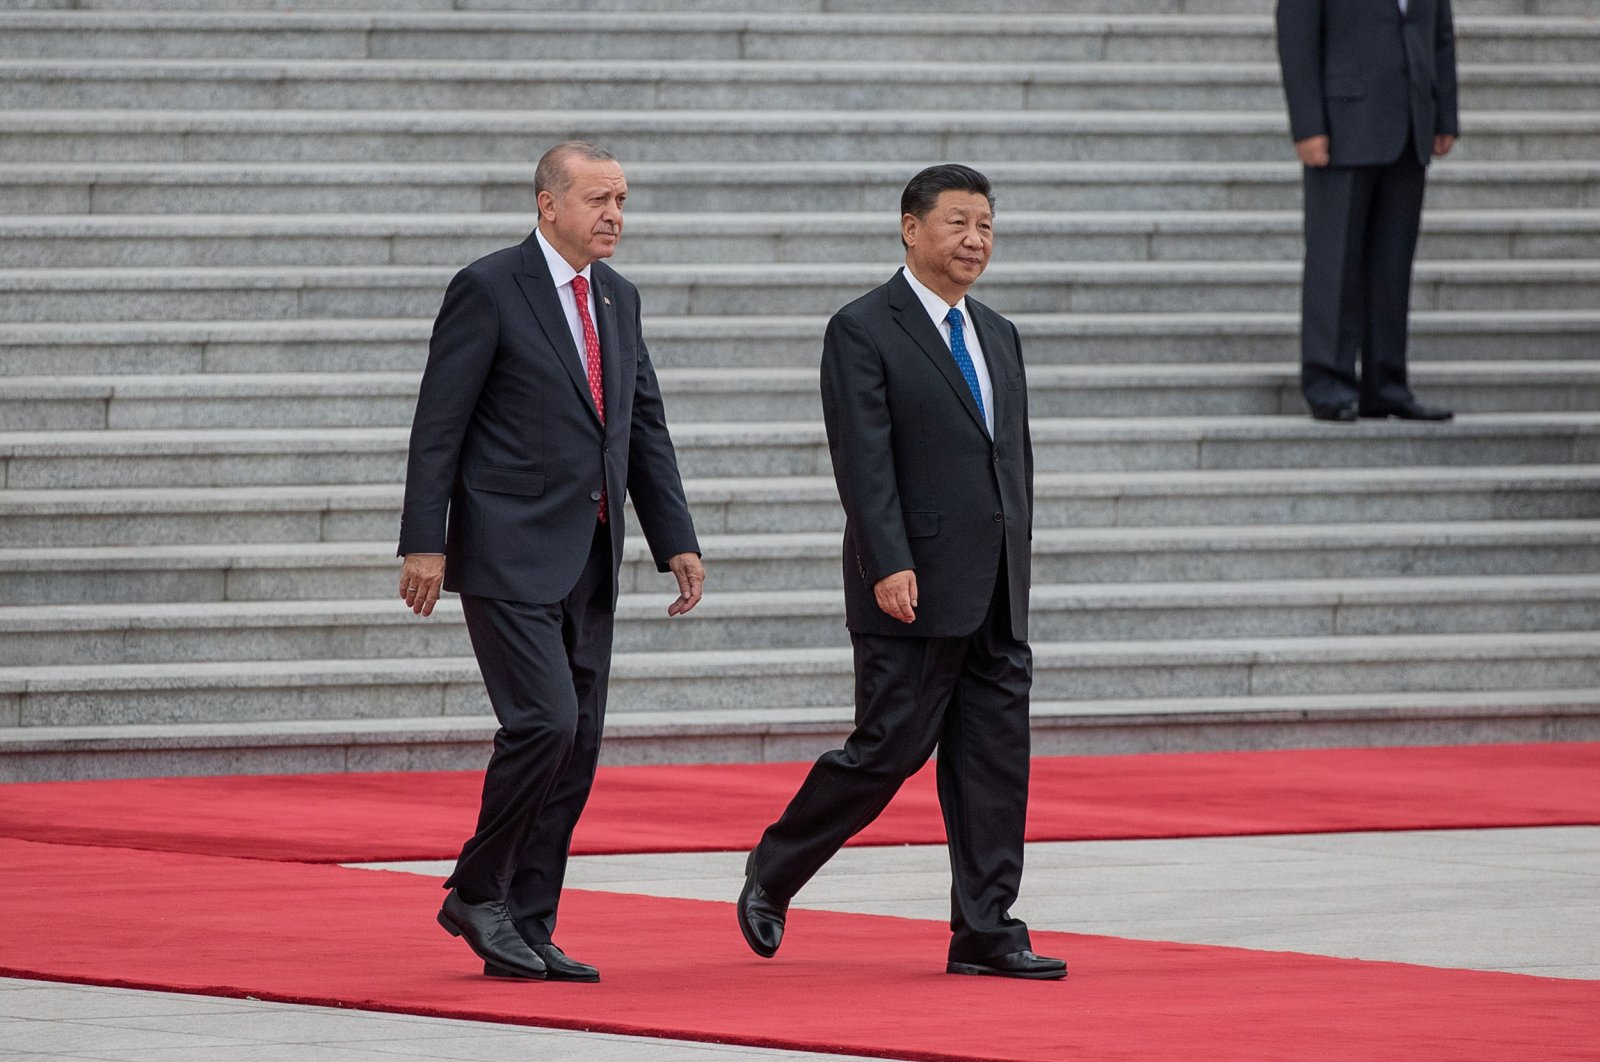 President Recep Tayyip Erdoğan and China's President Xi Jinping attend a welcome ceremony at the Great Hall of the People in Beijing, China, July 2, 2019. (Reuters Photo)